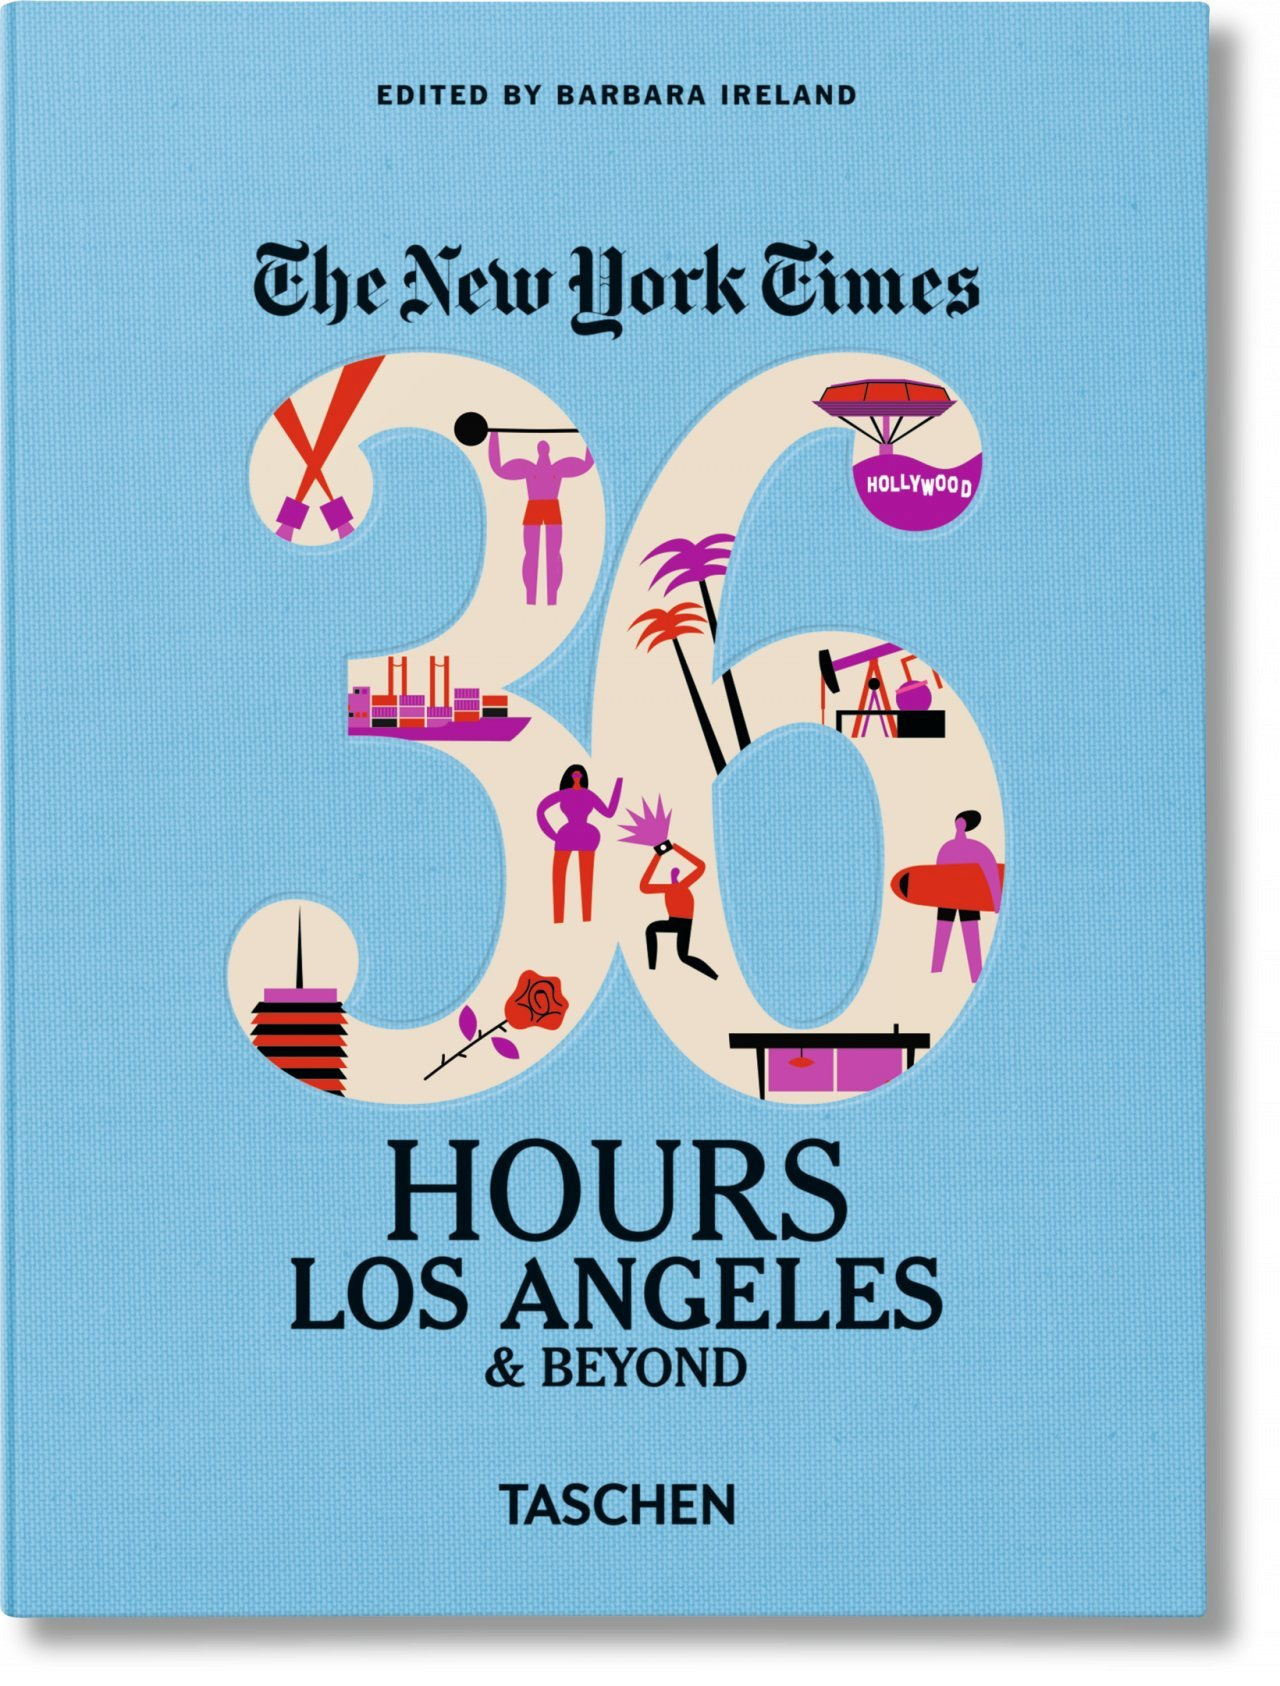 VA-THE NEW-YORK TIMES, 36 HOURS, LOS ANGELES - ANGLAIS